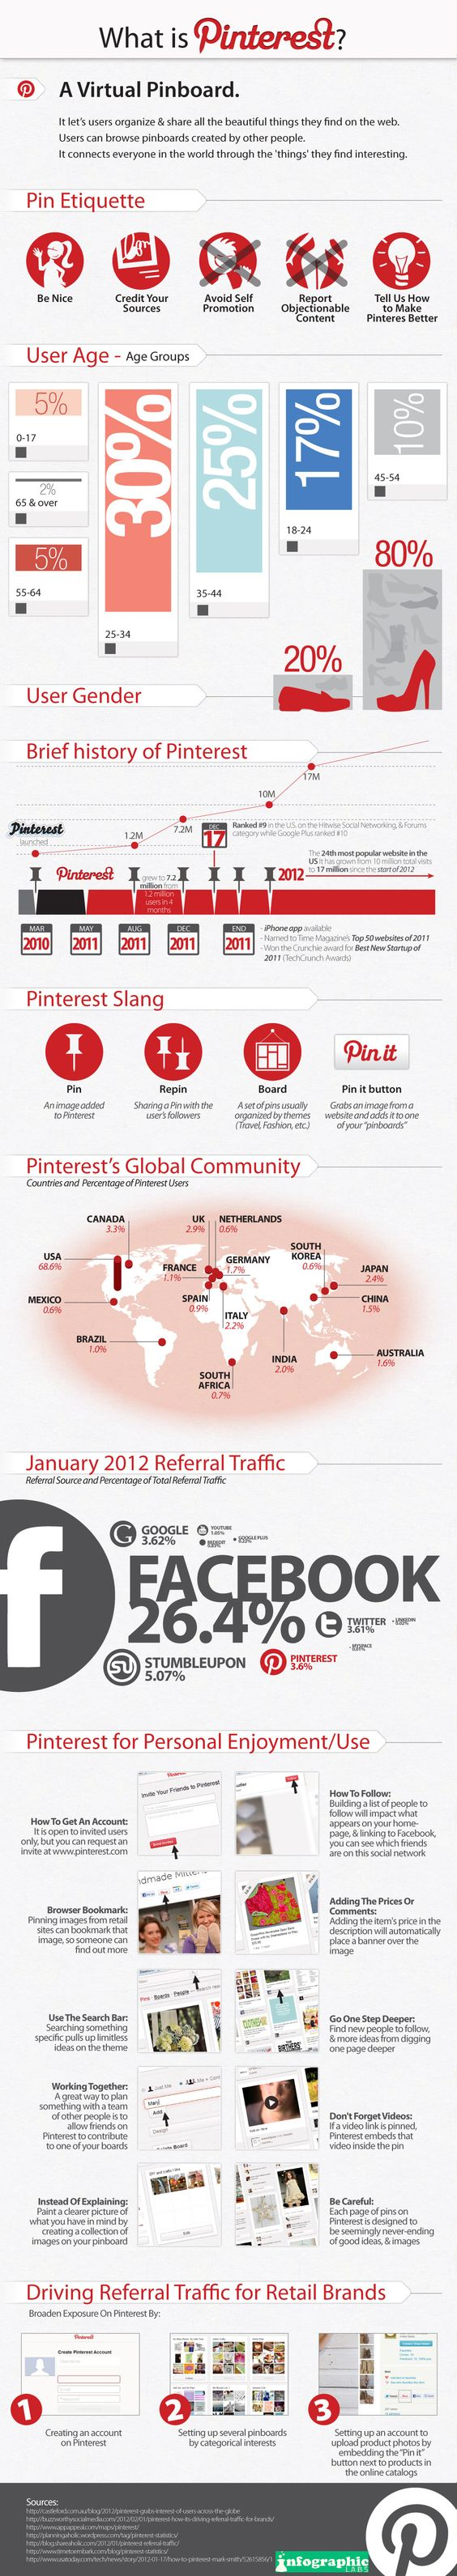 PiINTEREST – THE SOCIAL MEDIA ===>Infographic<=== Who's using it and what's happening great information!